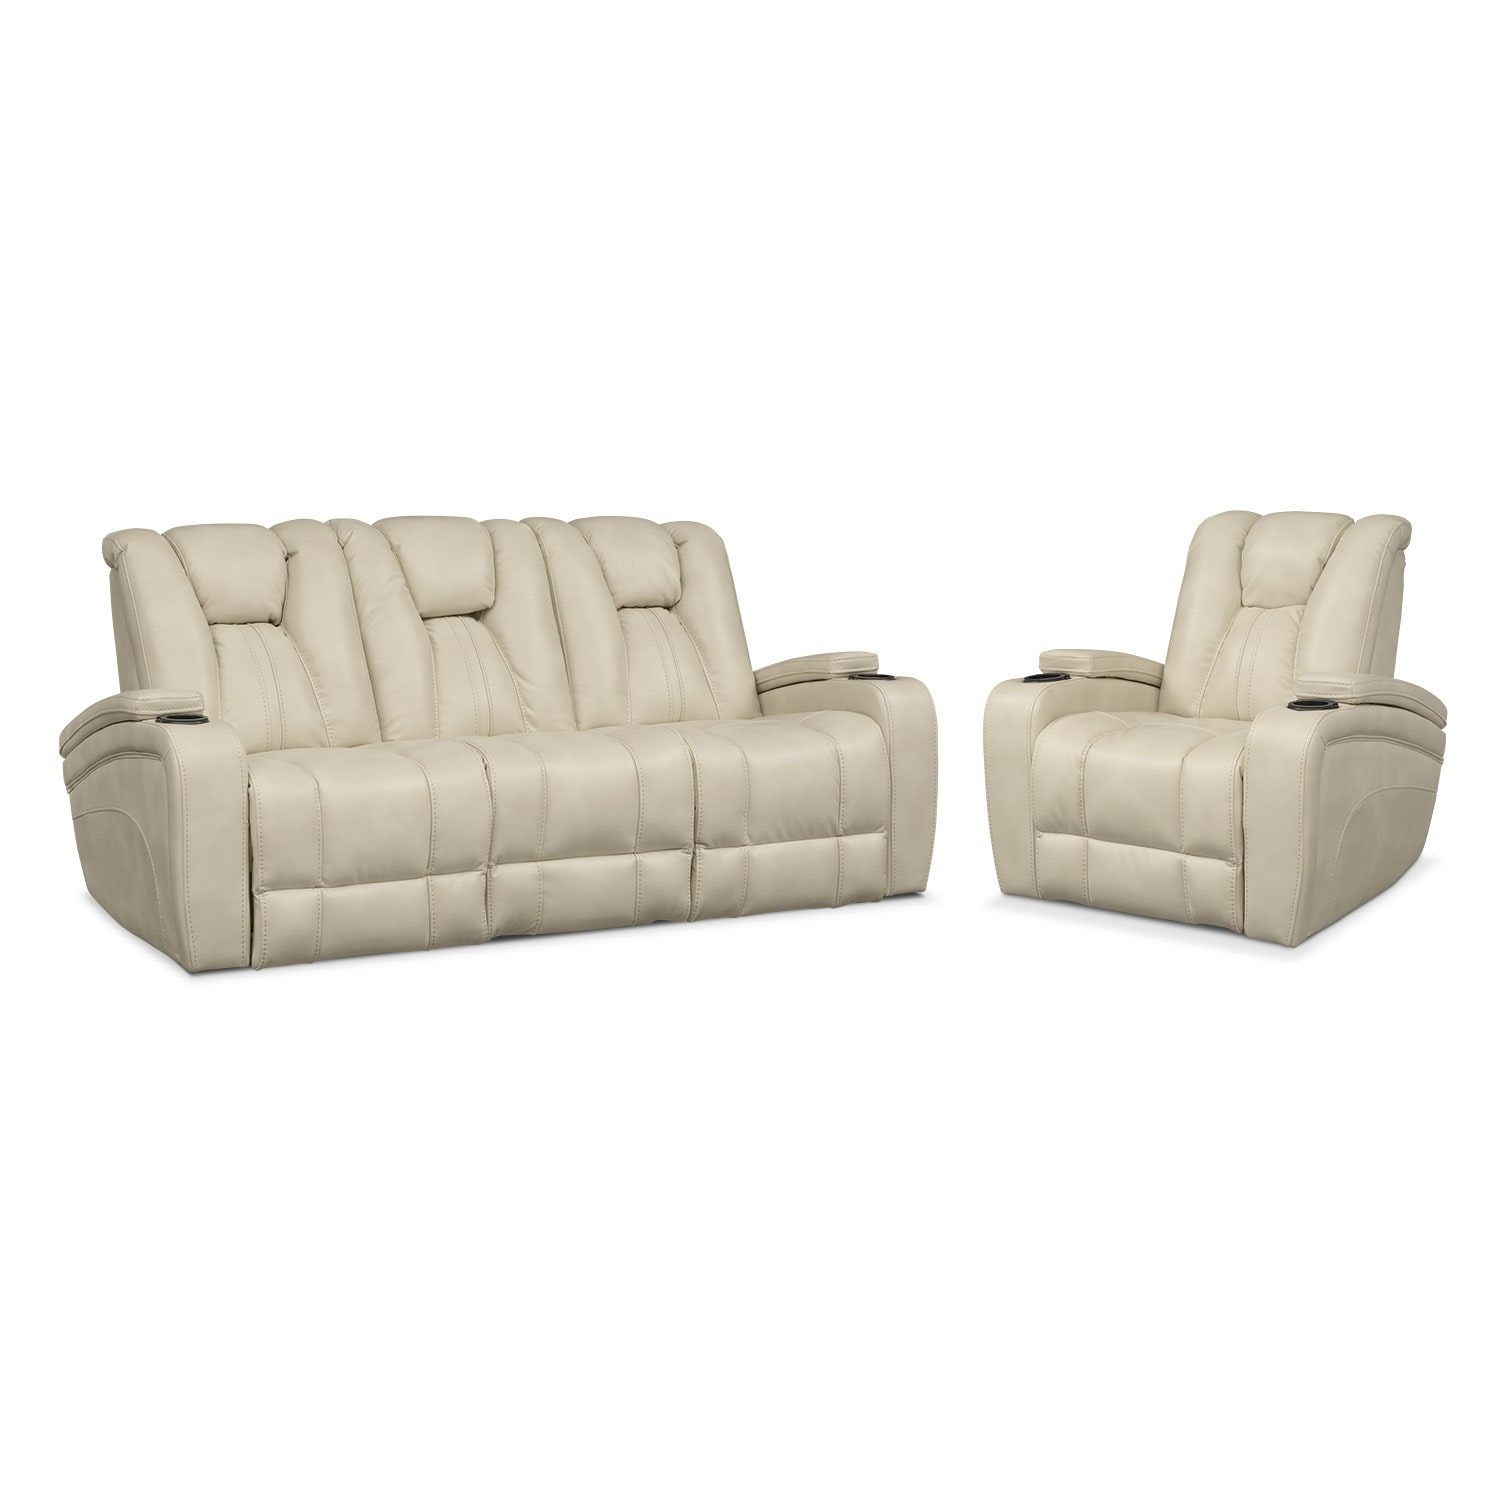 ... Dual Power Reclining Sofa and Power Recliner Set - Cream. Hover to zoom  sc 1 st  Value City Furniture : dual power reclining sofa - islam-shia.org